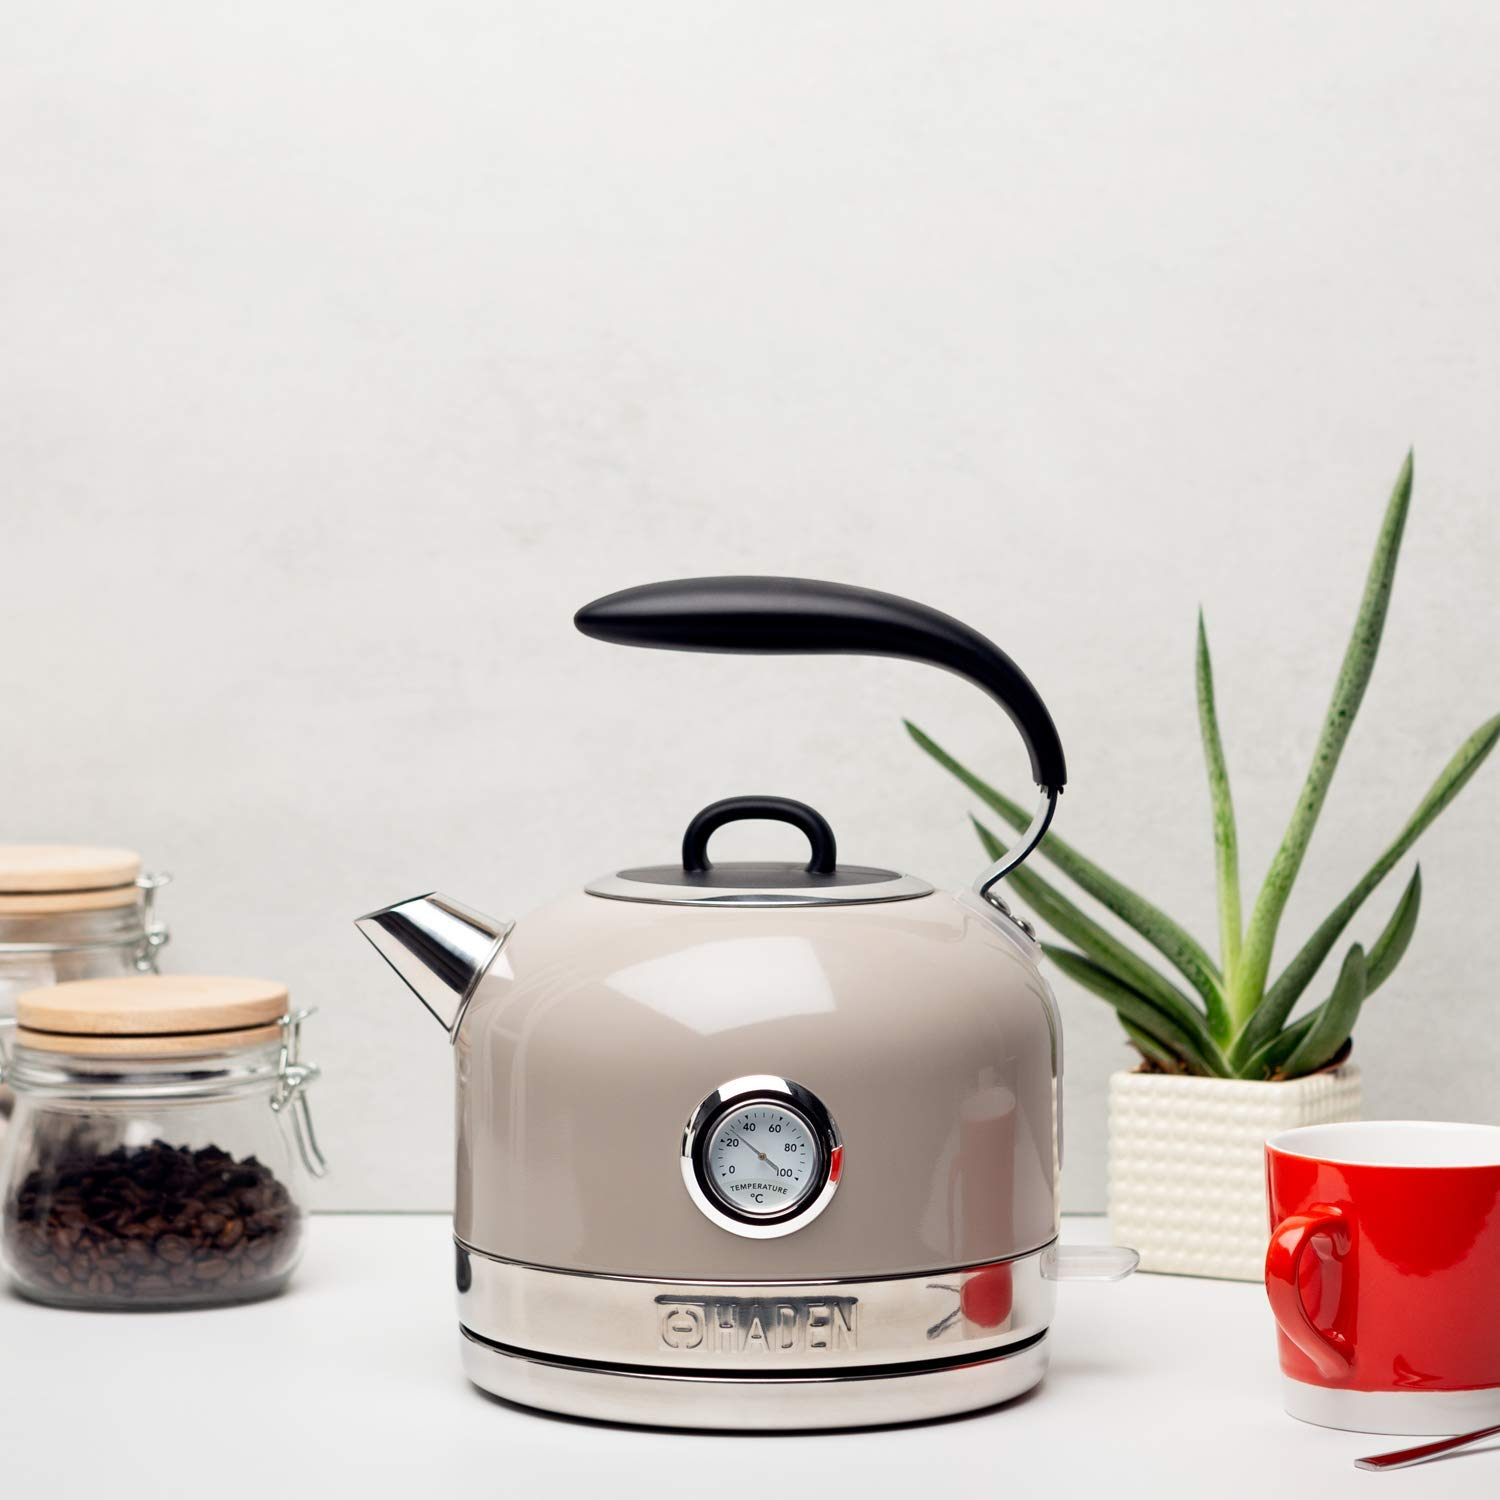 Haden Jersey Cordless Kettle - Electric Fast Boil Kettle with Temperature Gauge, 3000W, 1.5 Litre, Putty - SF120